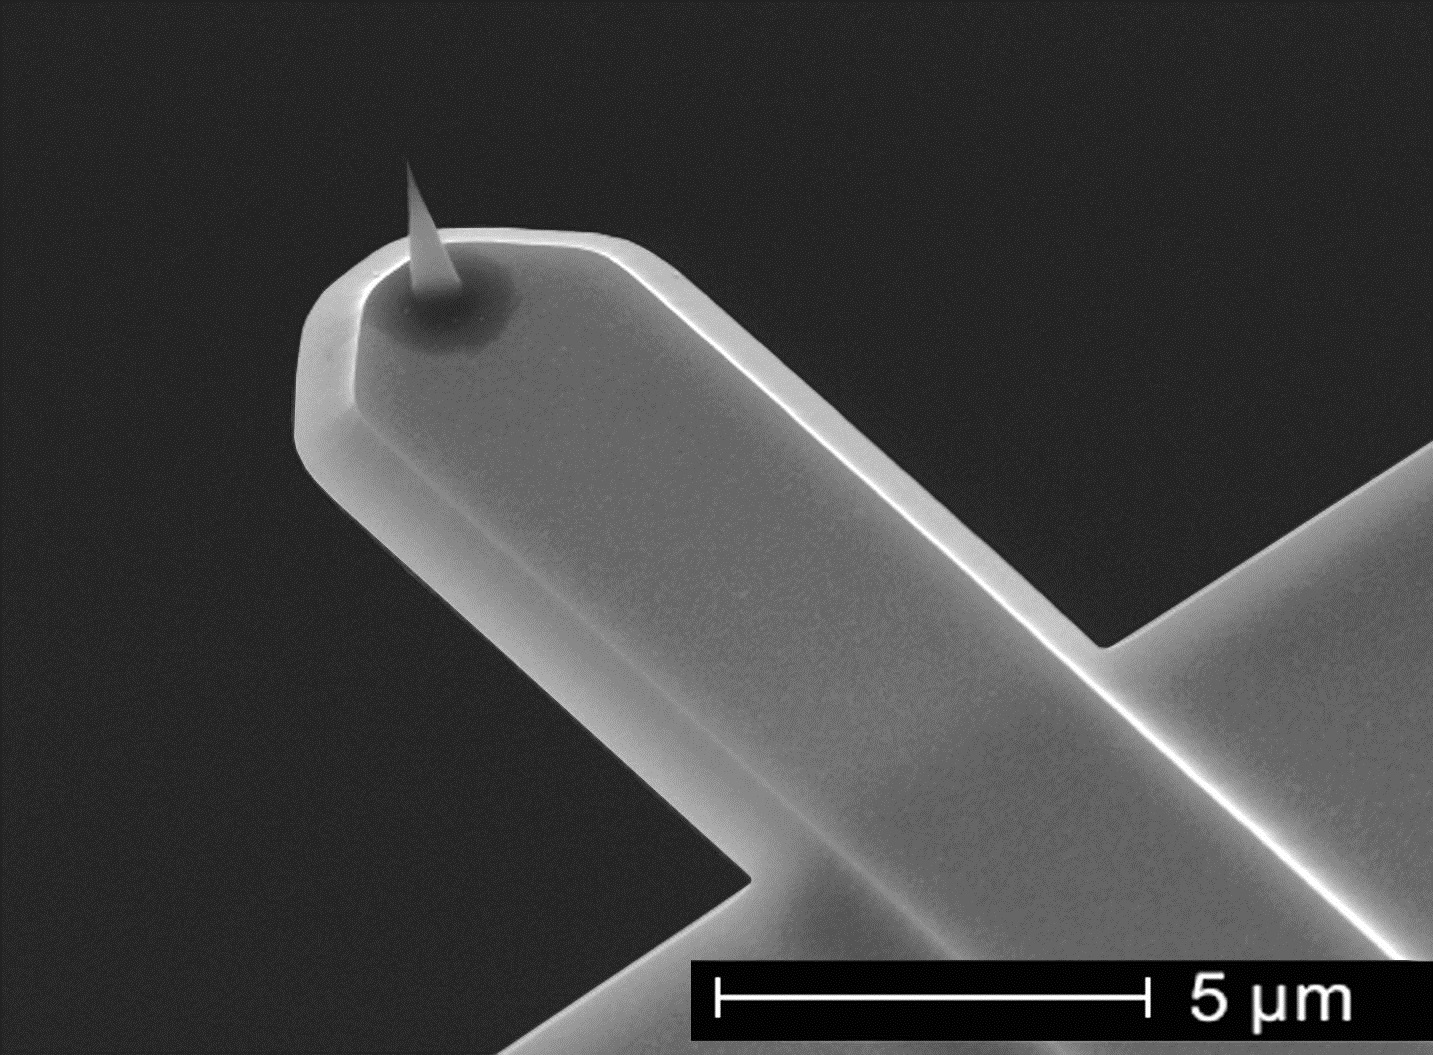 NanoWorld Ultra-Short-Cantilevers (USC) - AFM tips for video rate atomic force microscopy